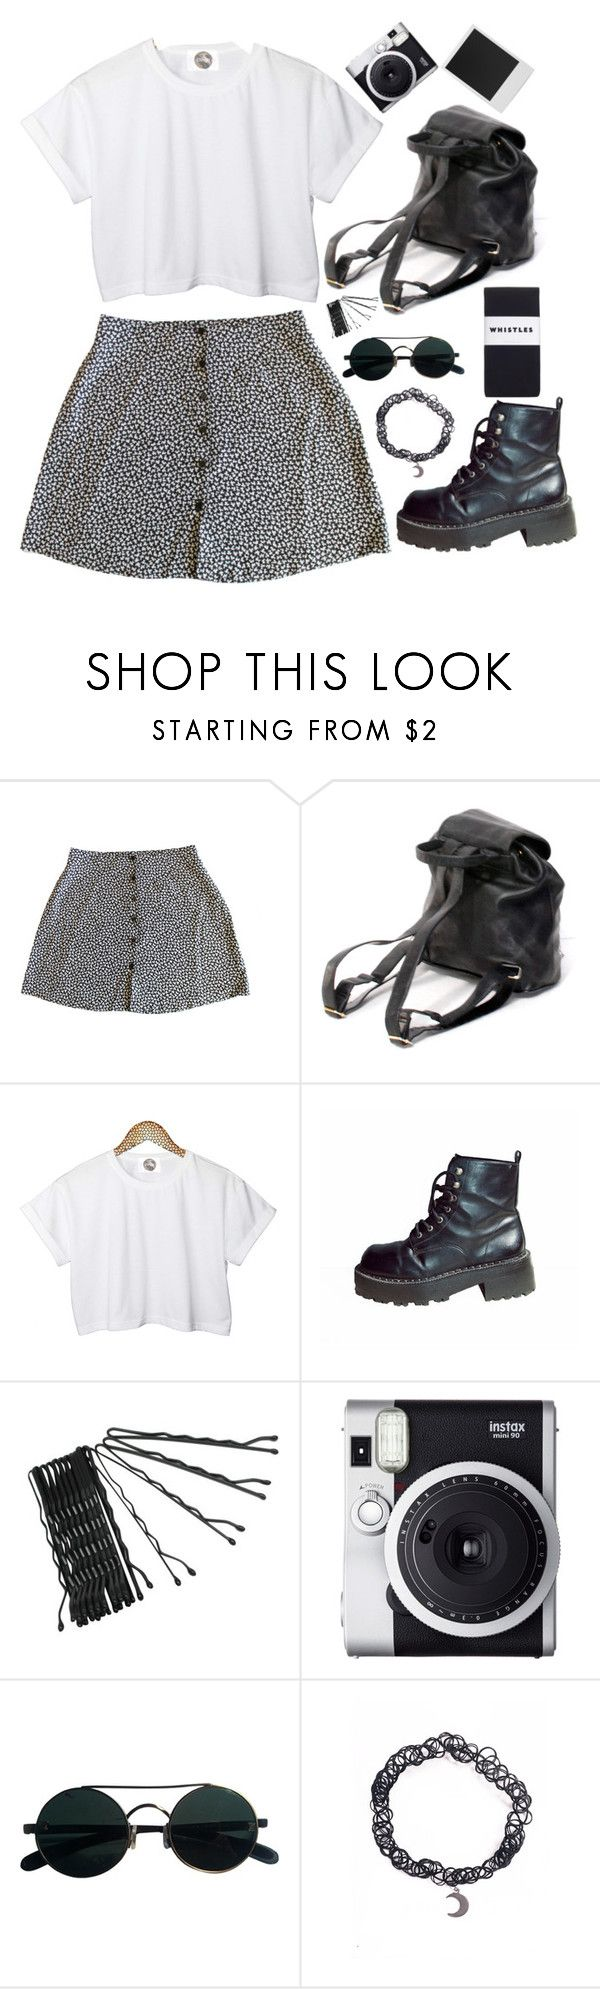 """""""90's grunge"""" by wtf-towear ❤ liked on Polyvore featuring CC, Conair, Fuji, Polaroid, Whistles, women's clothing, women's fashion, women, female and woman"""